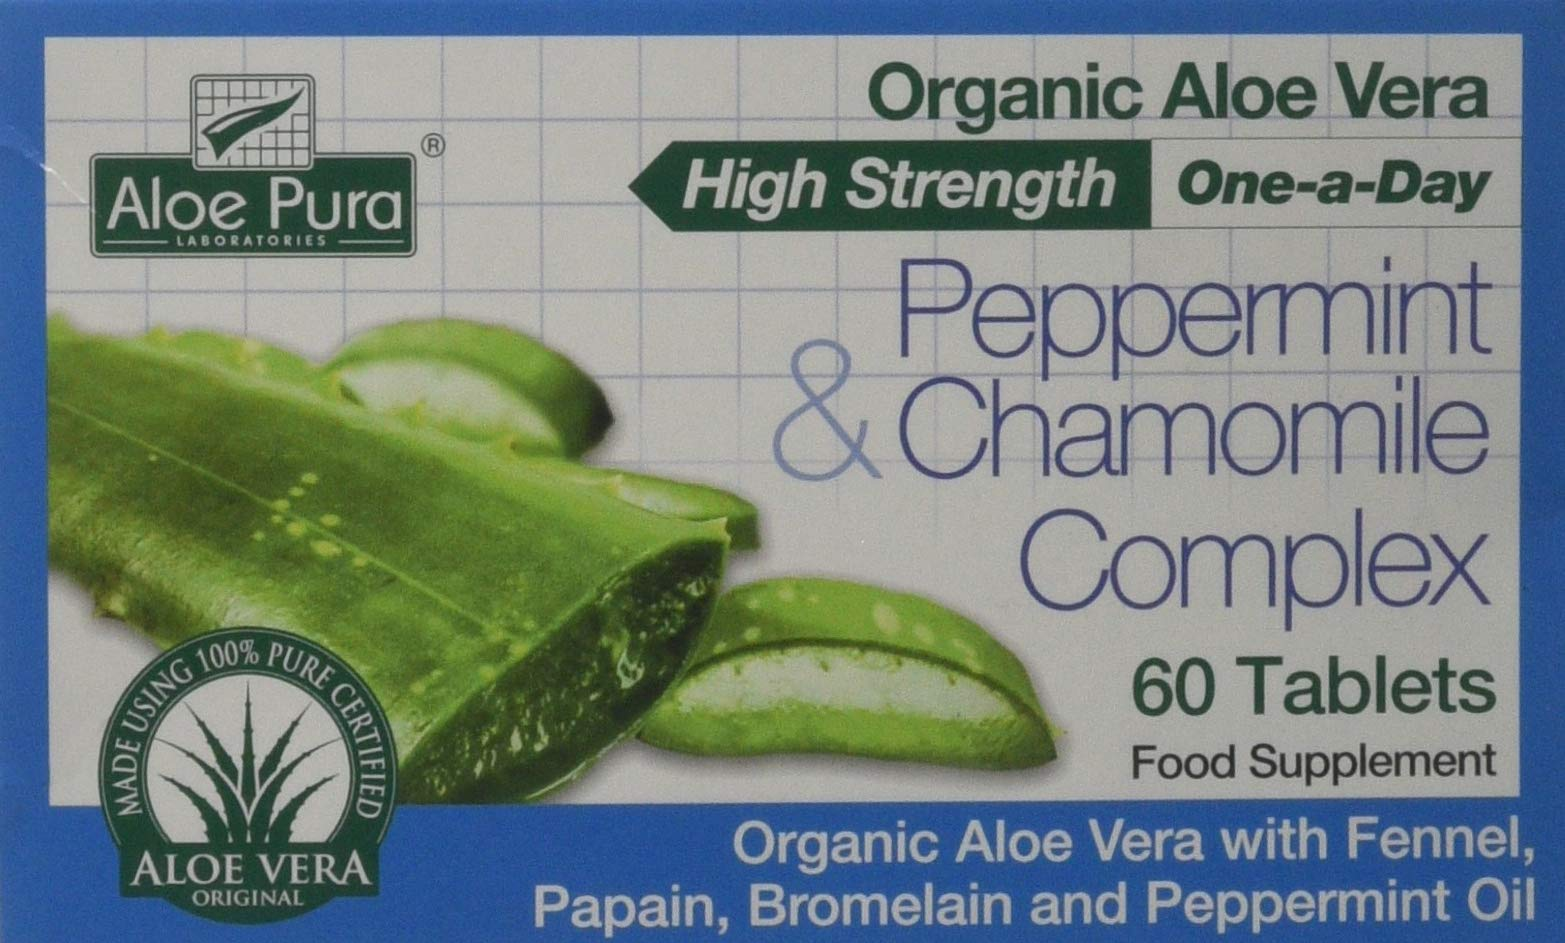 Aloe Vera Peppermint and Chamomile Complex Tablets - 60